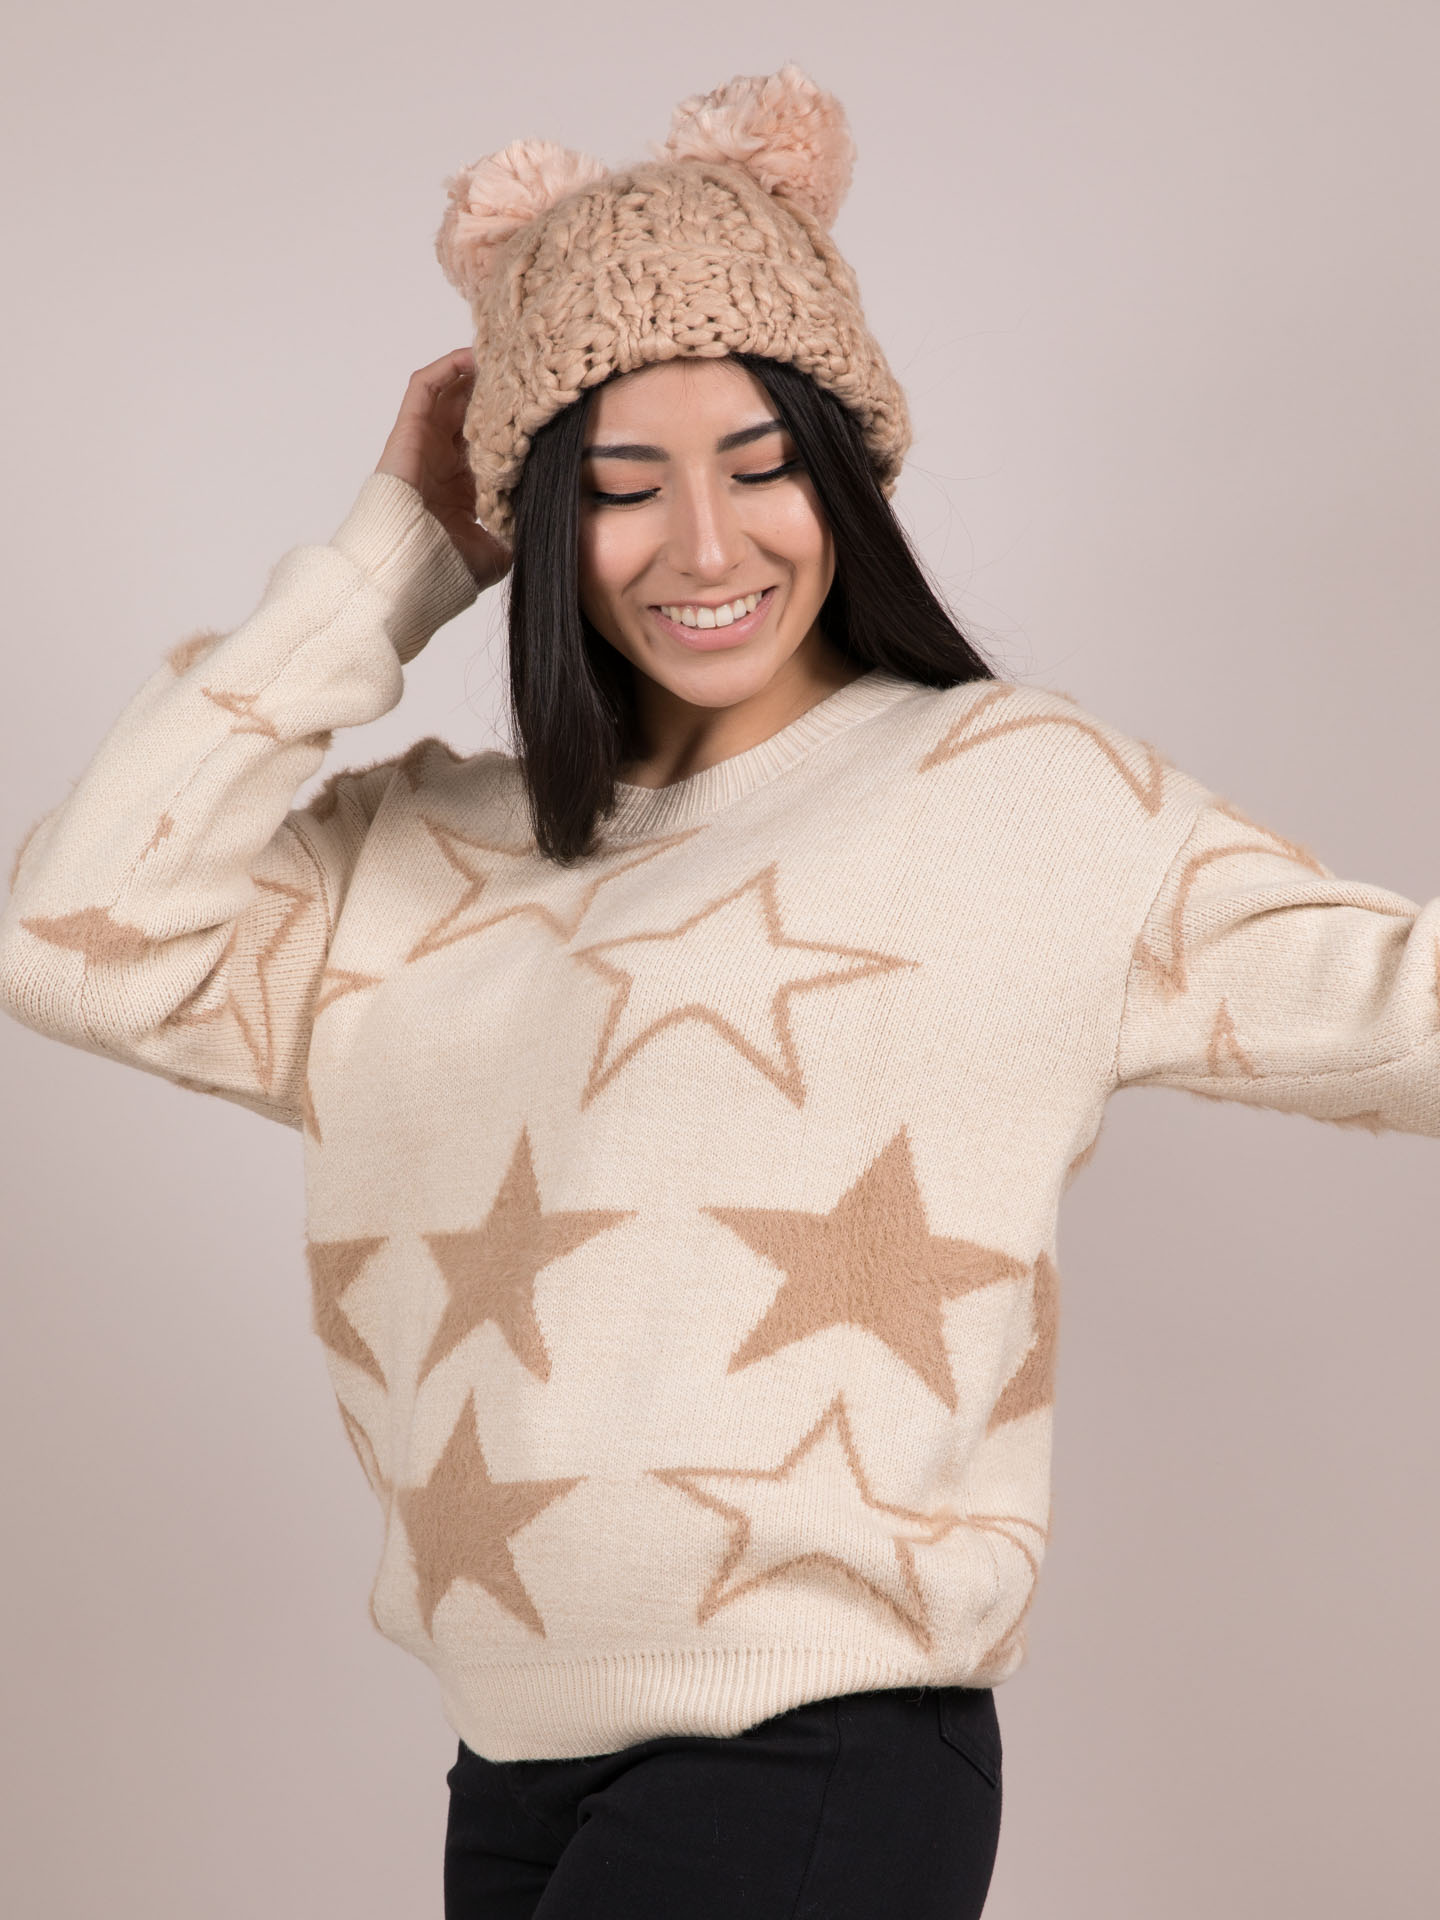 Seeing Stars Sweater Cozy Star Pattern Top Side